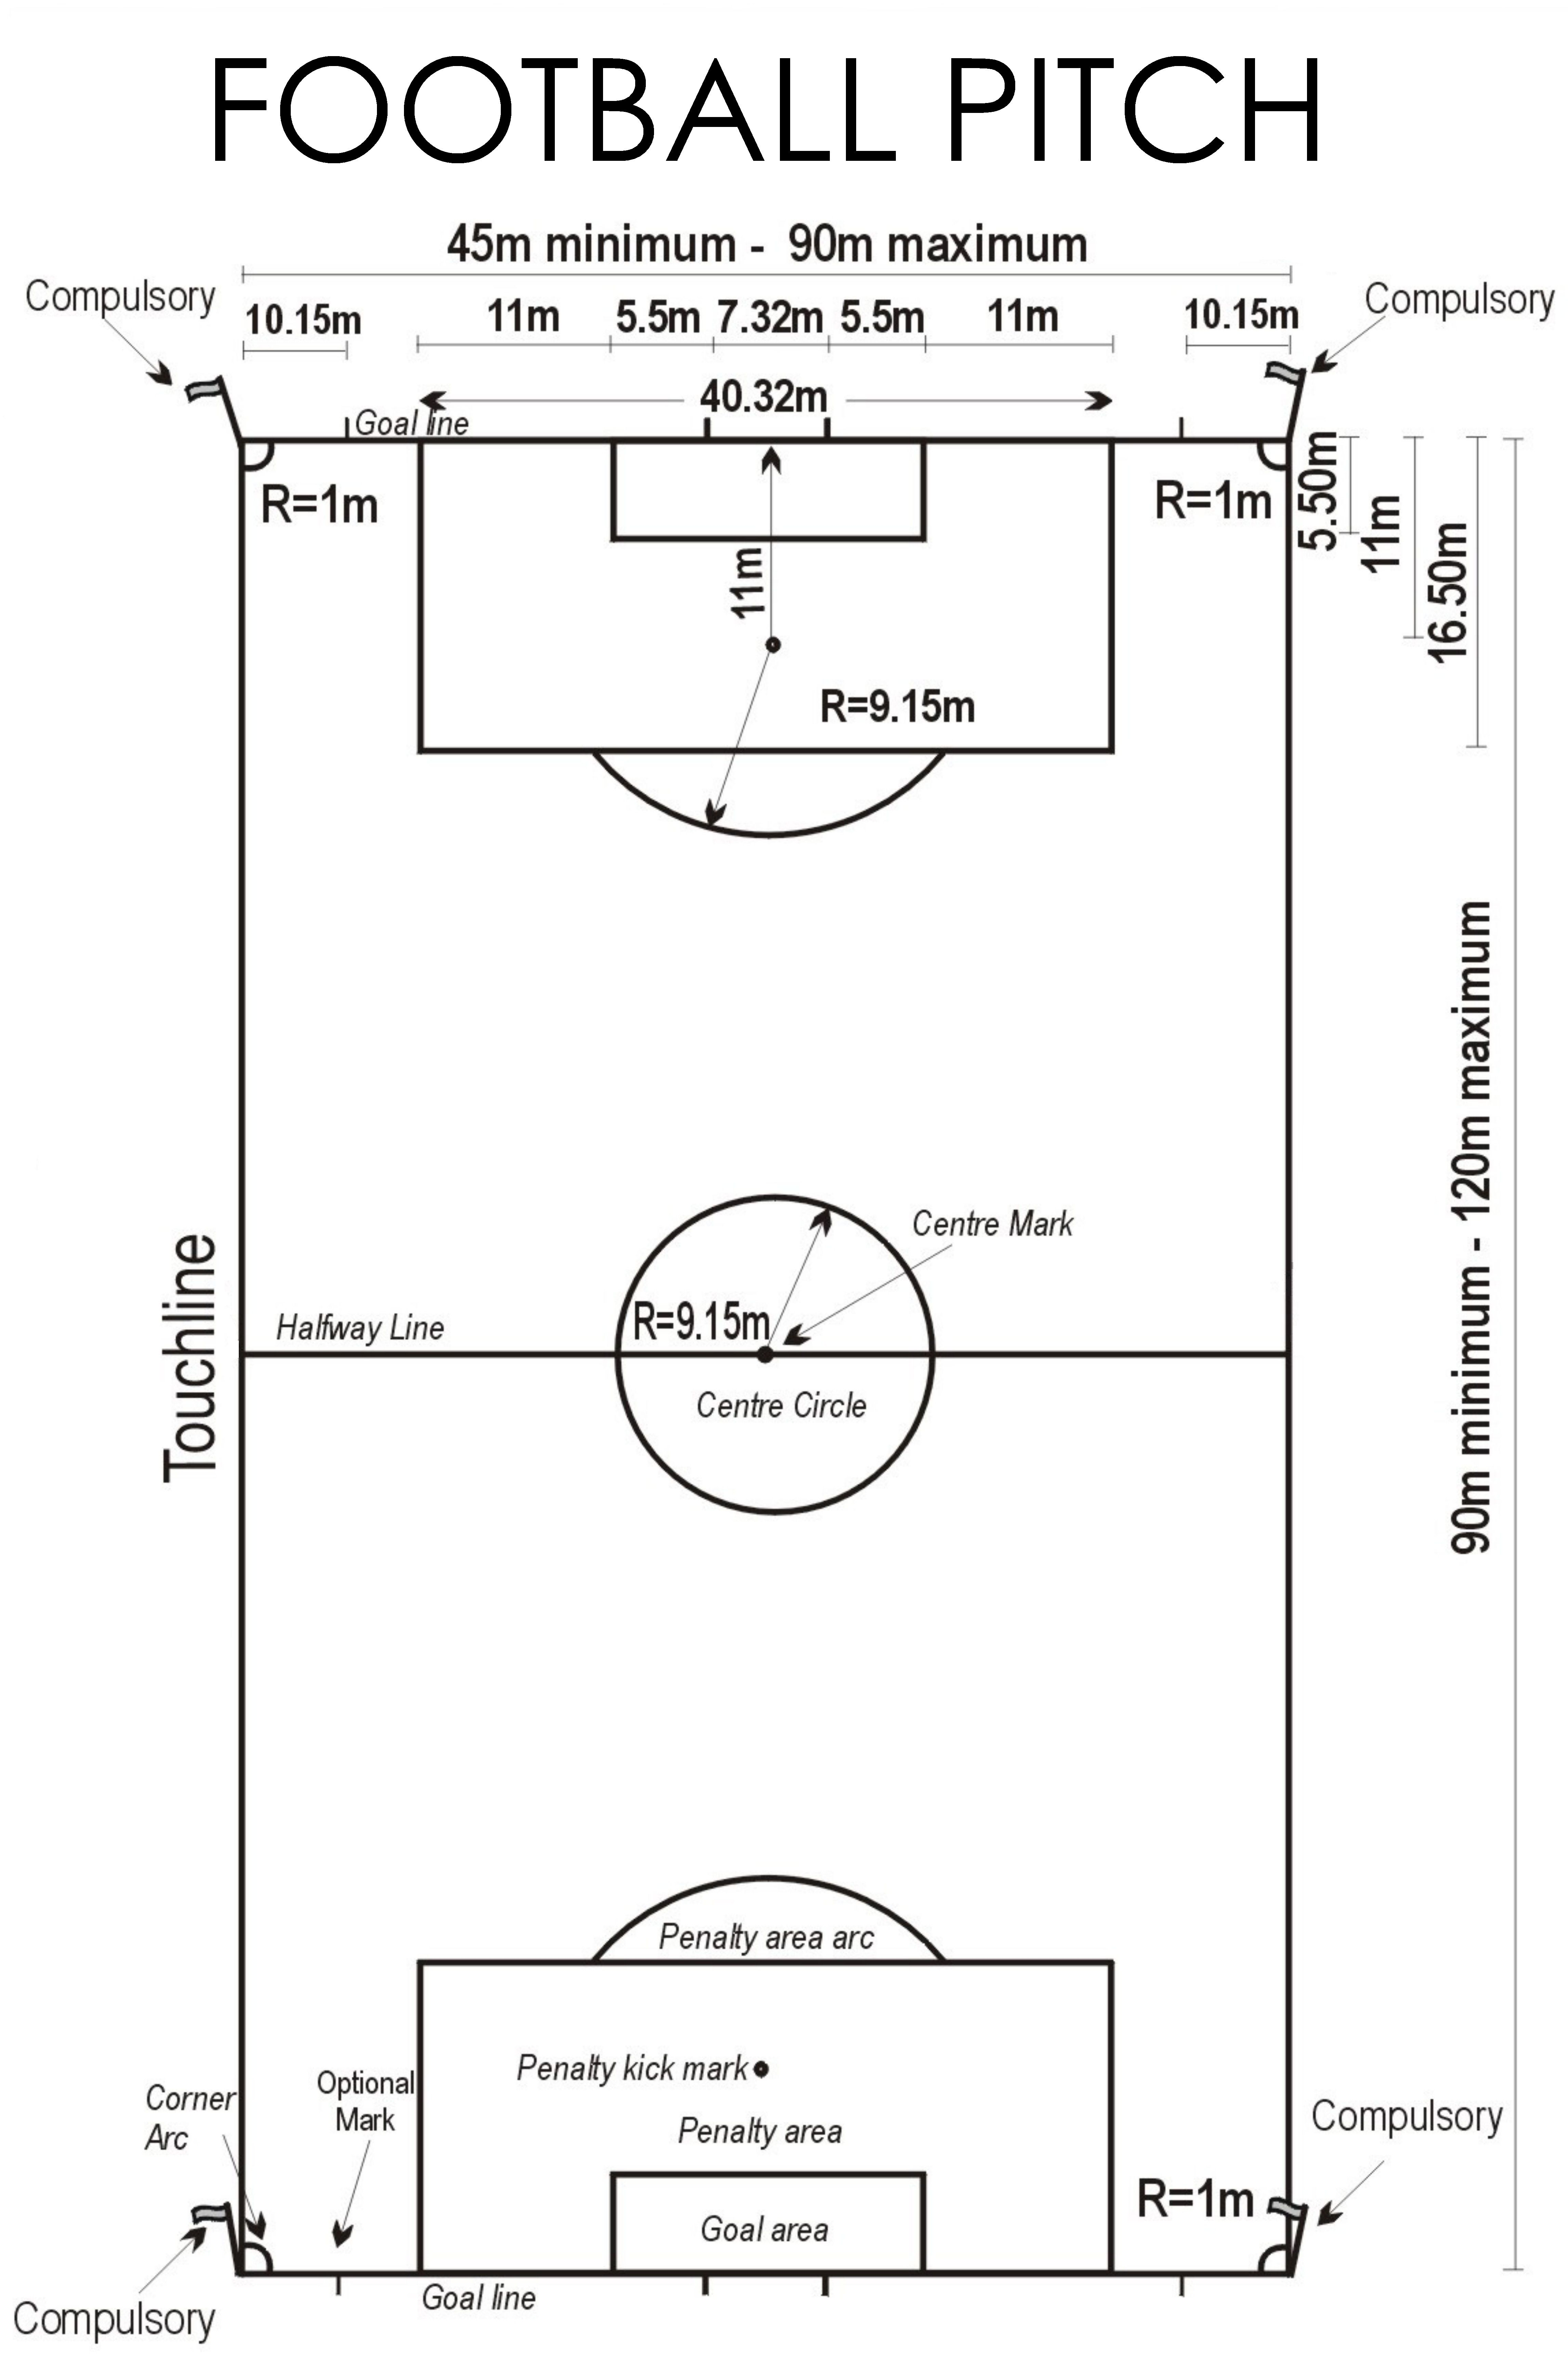 Association football pitch football pitch dimensions